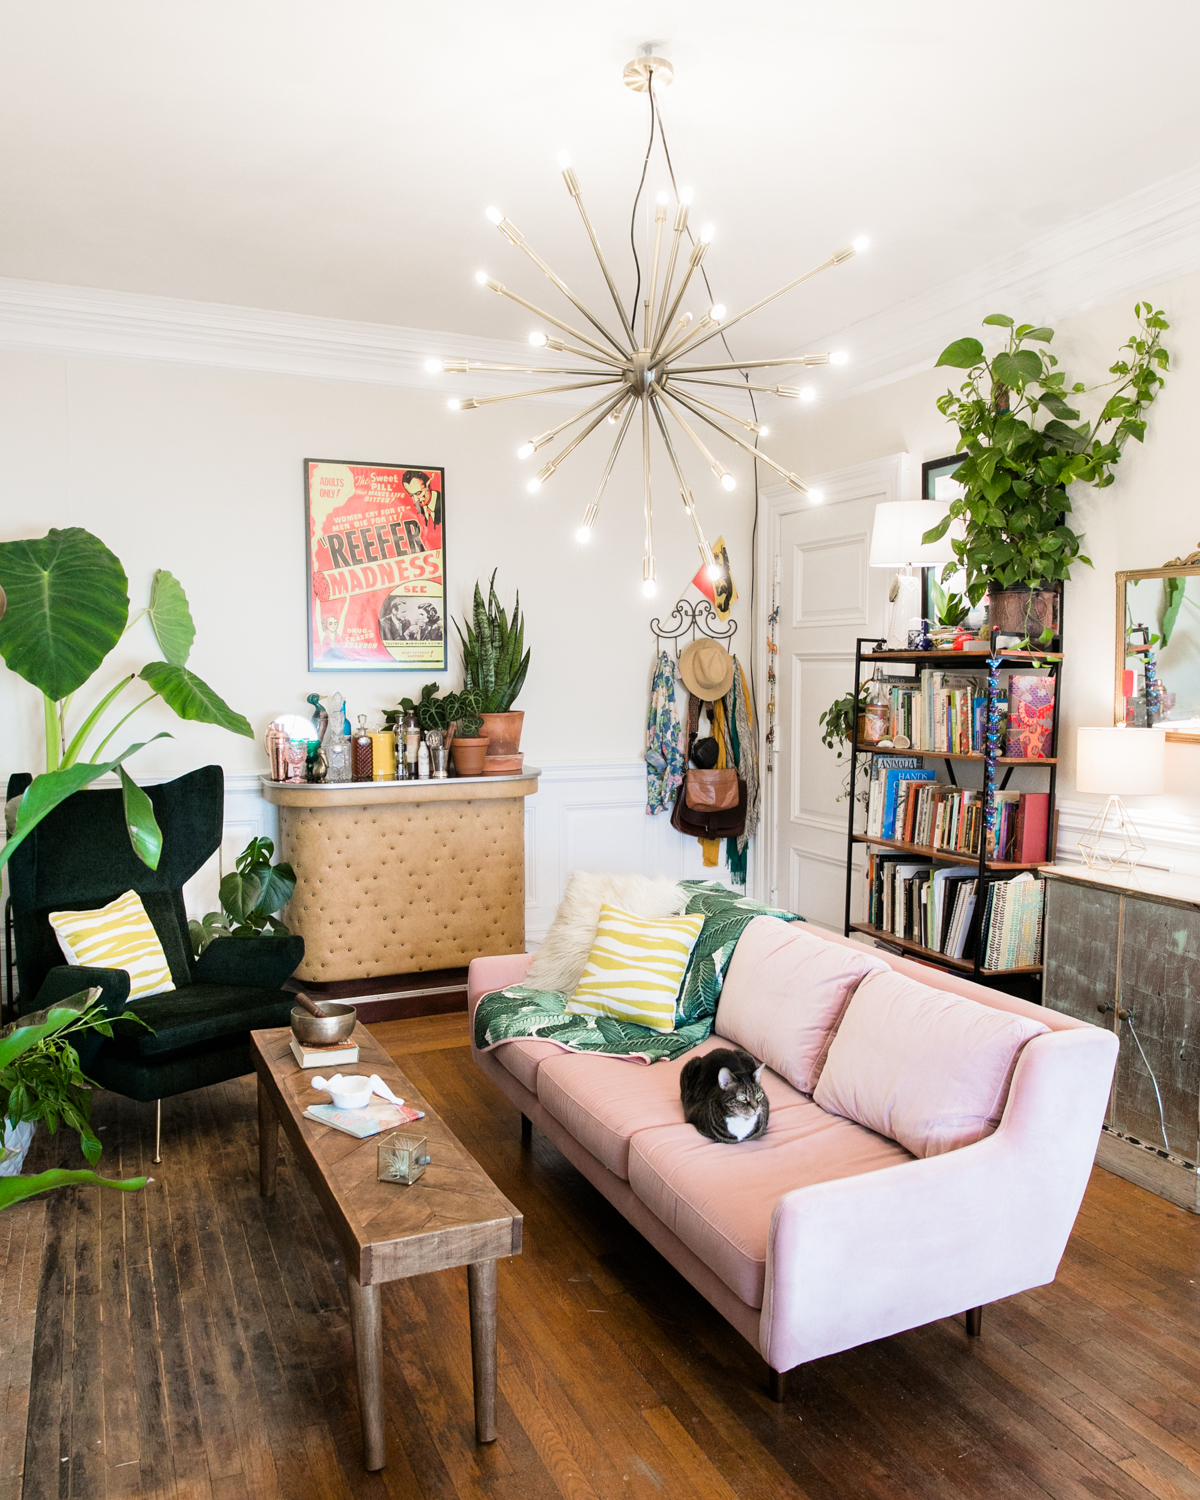 How To Turn Any Hardwired Light Fixture Into A Plug In Jessica Brigham